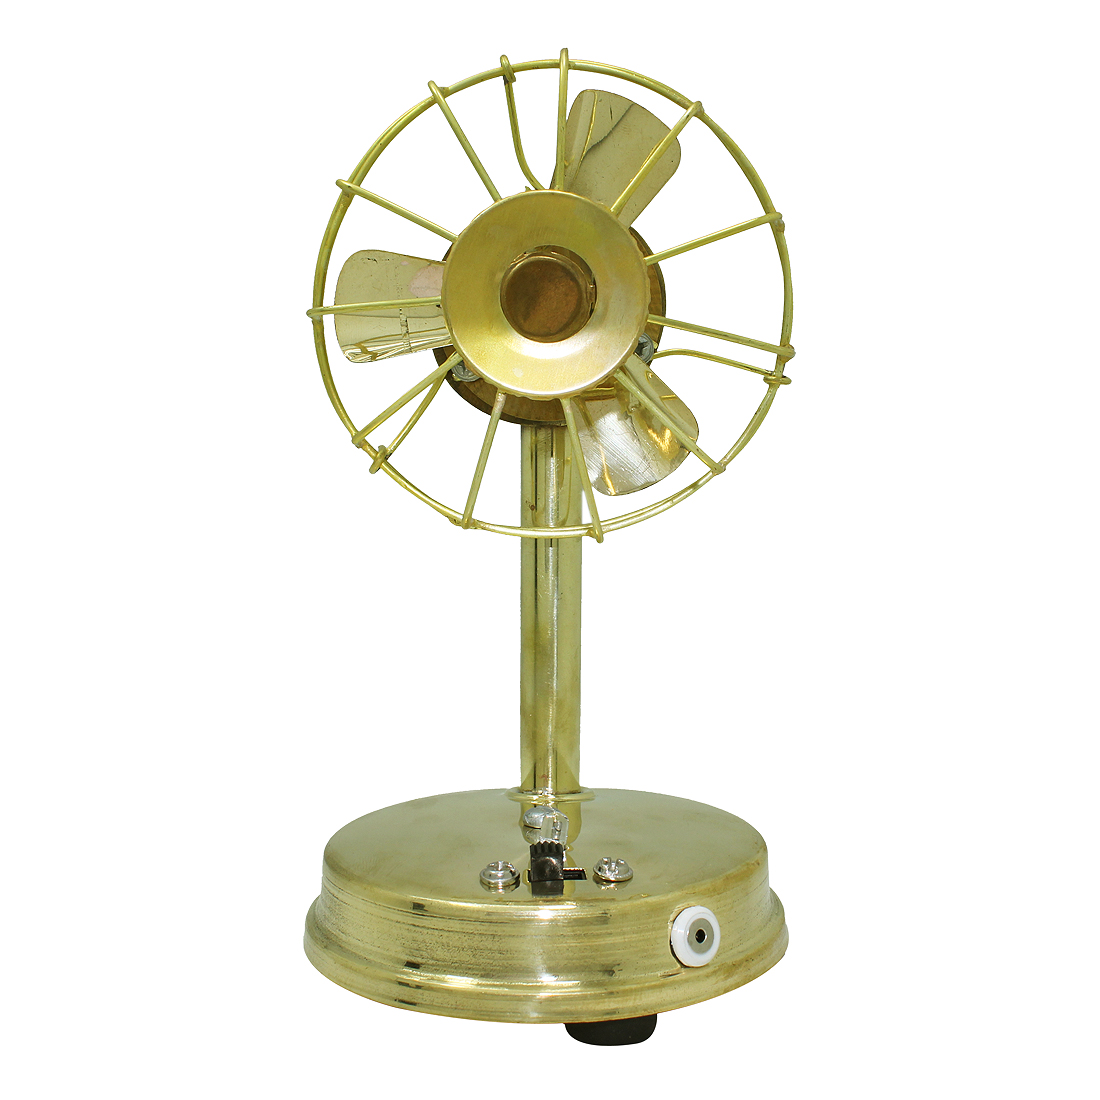 Frabjous Handcrafted Brass Mini Table Fan available at ShopClues for Rs.437